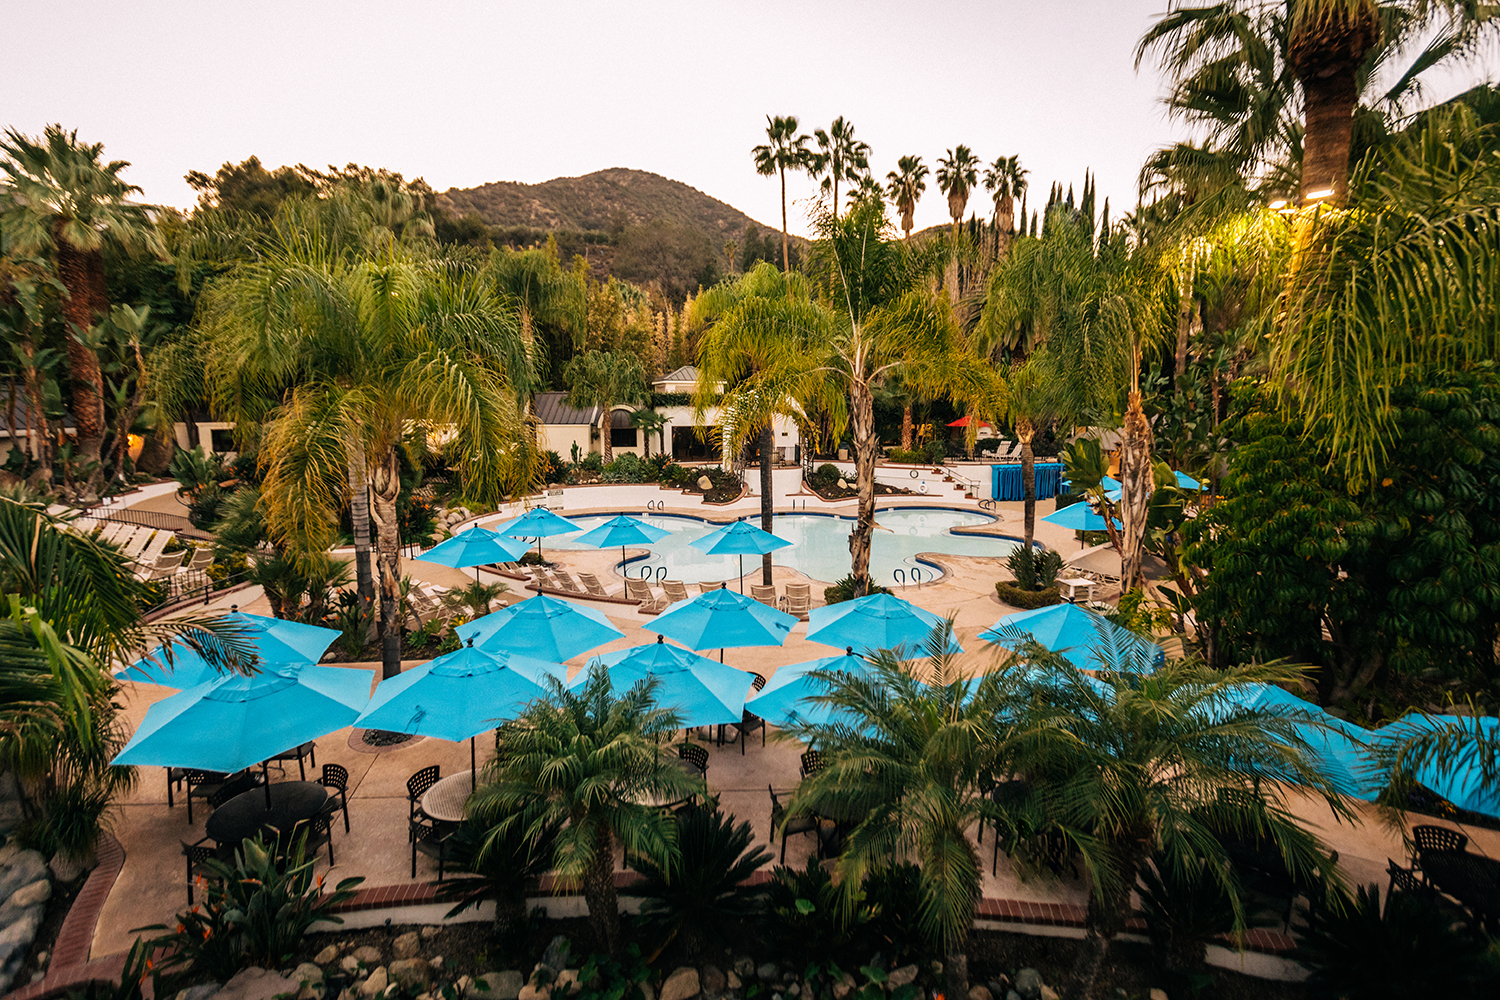 The resort is home to 19 different pools and mineral baths.